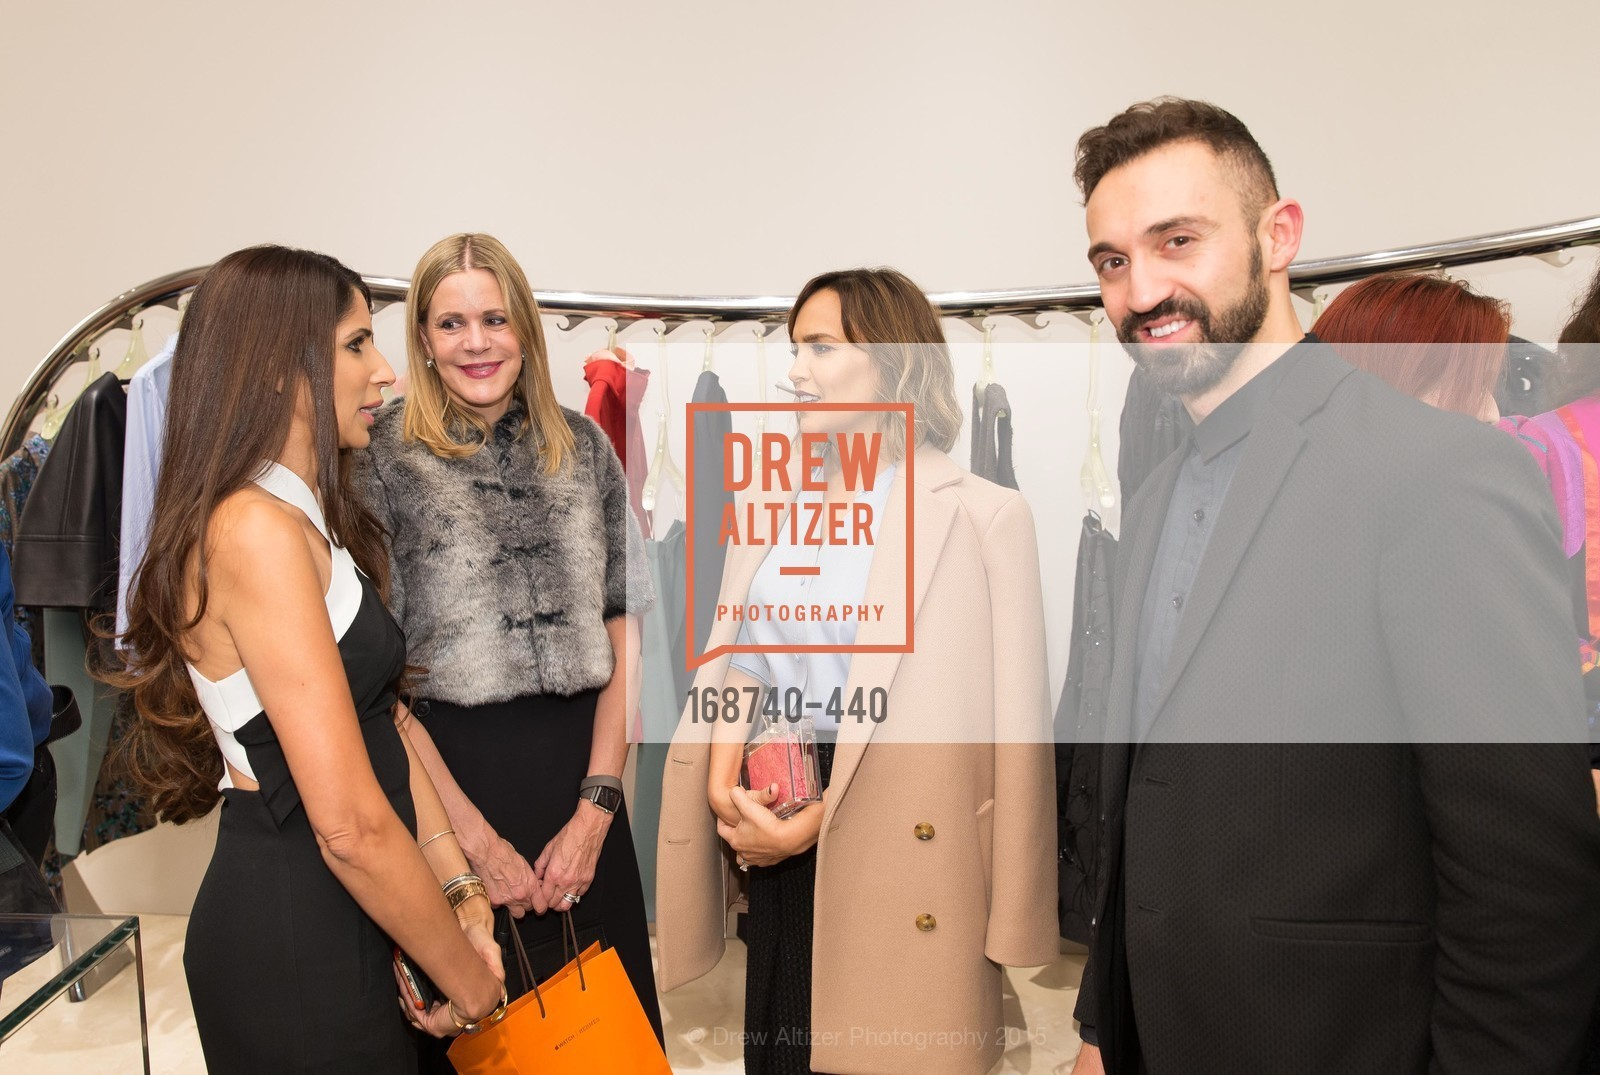 Sobia Shaikh, Mary Beth Shimmon, Stephan Rabimov, Lora DuBain, W Magazine and BAMPFA Celebrate the Opening of the Marni San Francisco Boutique with co-hosts Sabrina Buell and Alison Pincus, Marni San Francisco. 77 Maiden Lane, November 4th, 2015,Drew Altizer, Drew Altizer Photography, full-service event agency, private events, San Francisco photographer, photographer California